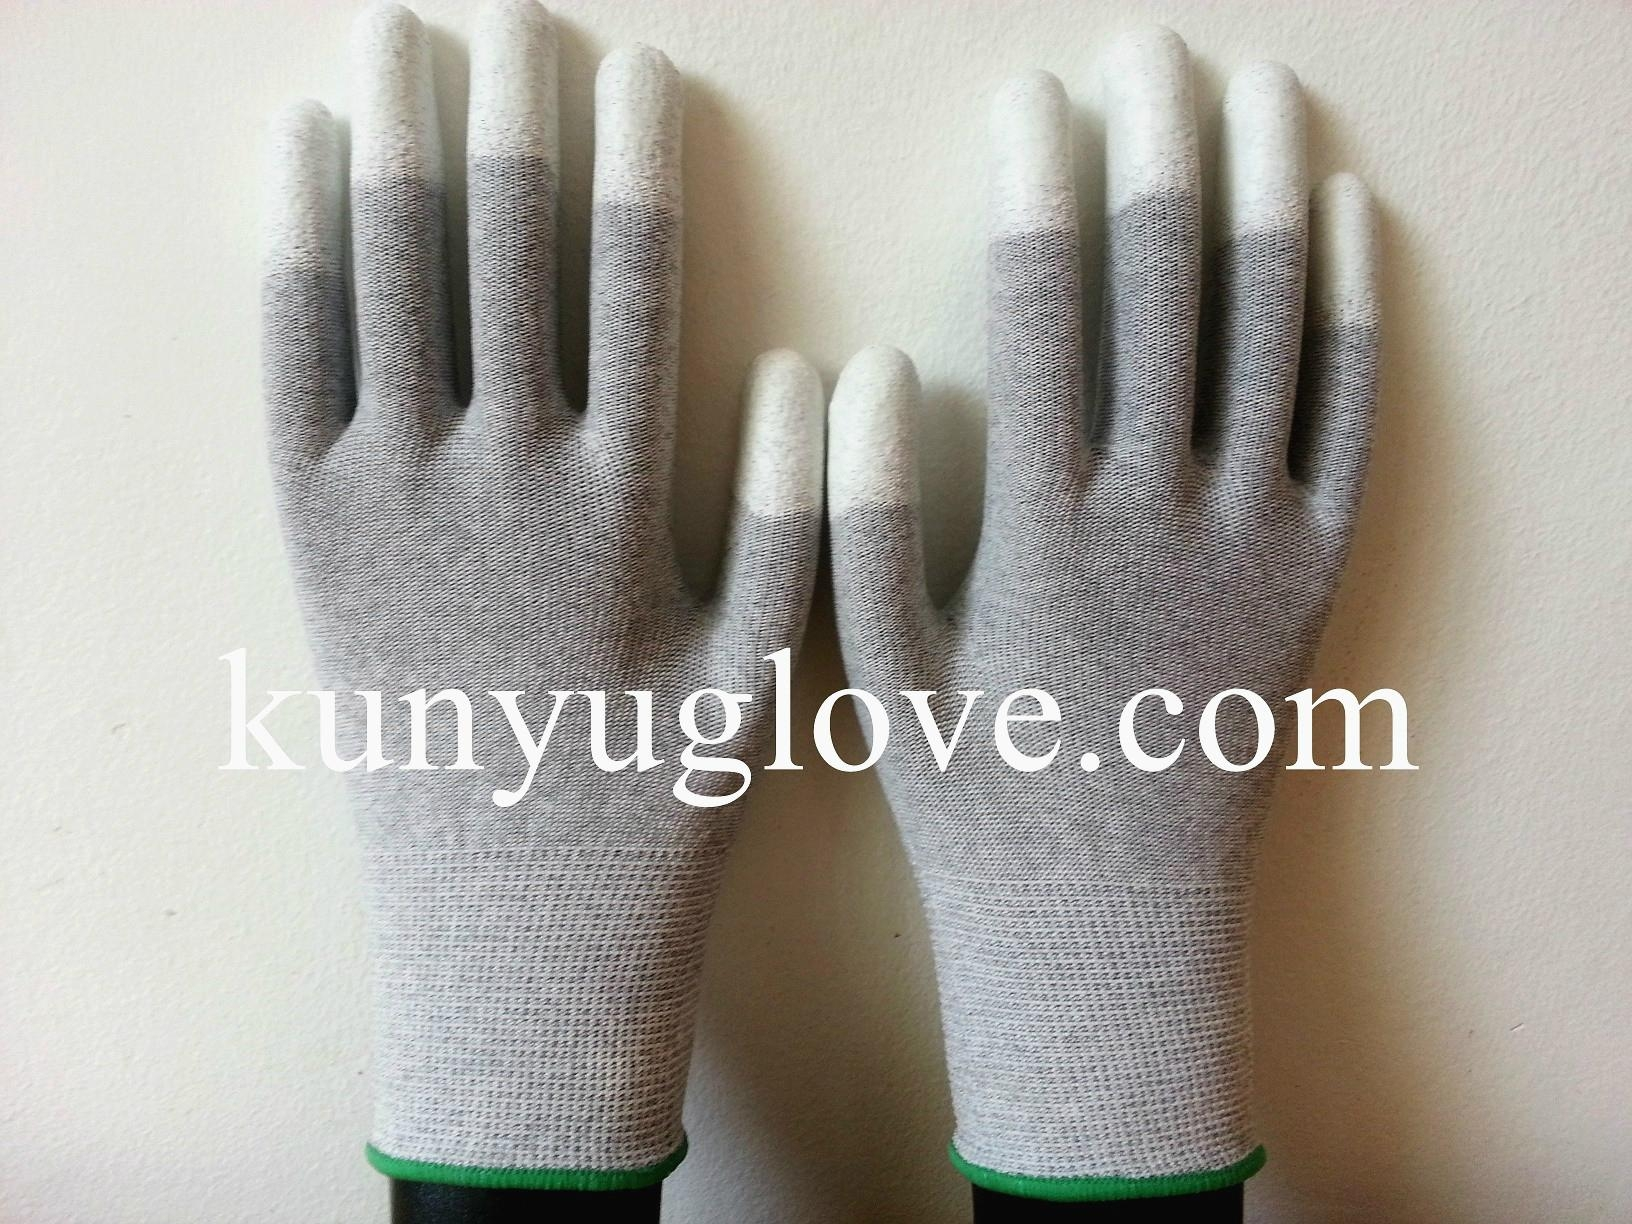 13 Guage carbon yarn knitting glove with white fingertip pu coating gloves 1